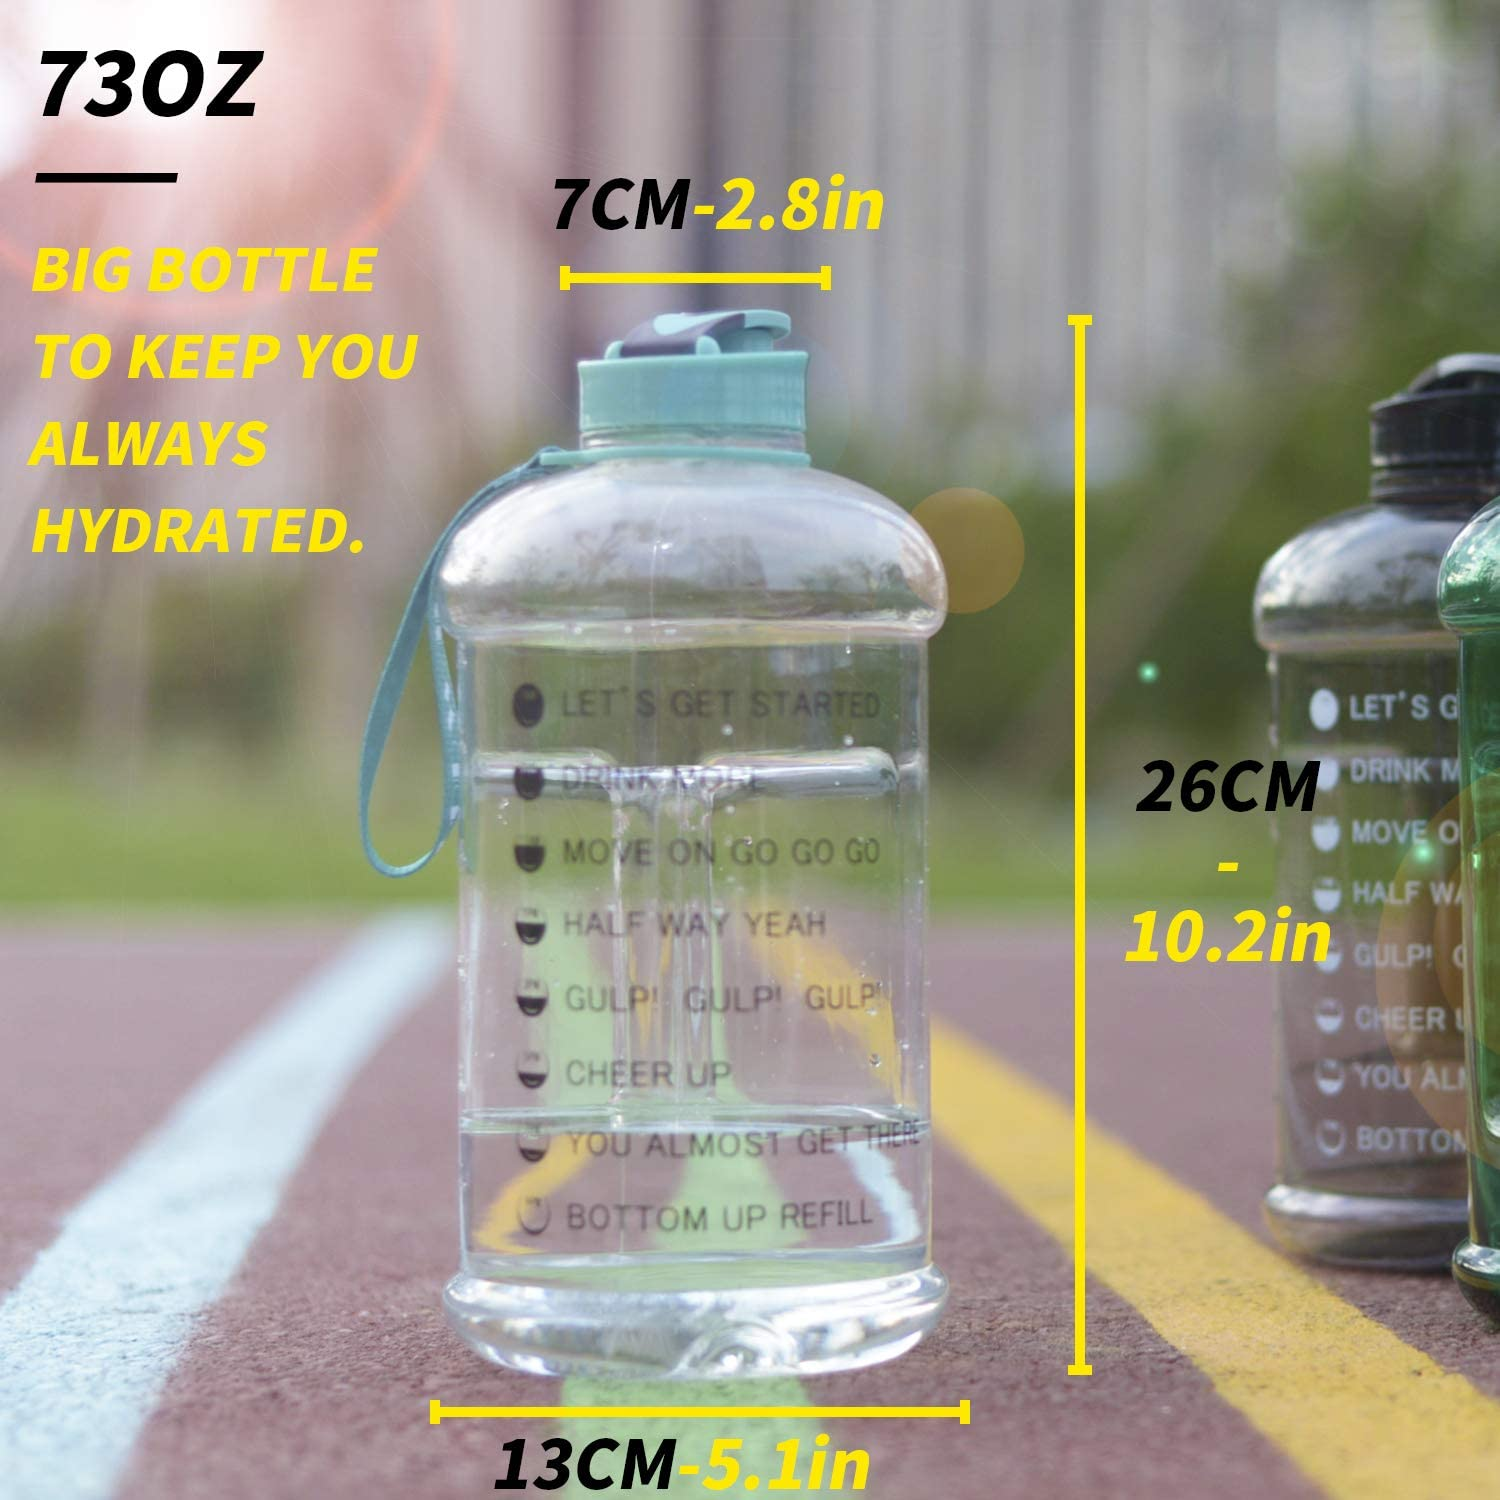 Moonice 2.2L//75OZ Gym Sports Water Bottle Half Gallon Water Jug with Mitivational Time Marker Dishwasher Usable Portable Big Capacity BPA Free Drinking Gym Water Jug for Men Women Fitness Gym Outdoor